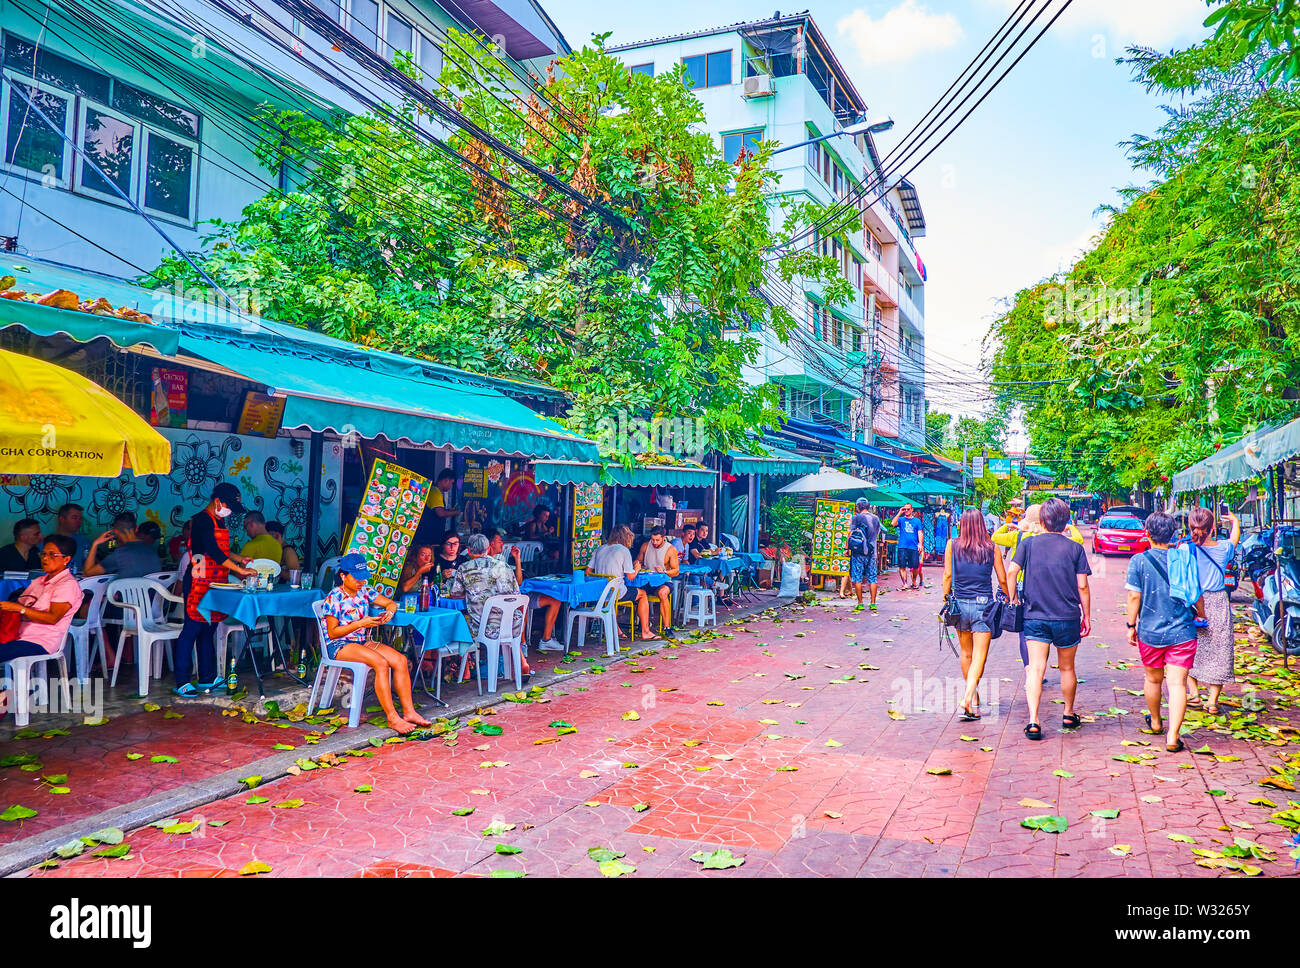 BANGKOK, THAILAND - APRIL 22, 2019: The cozy Ram Buttri street lacated in the center of the city and offers variety of hotels and restaurants with aff - Stock Image